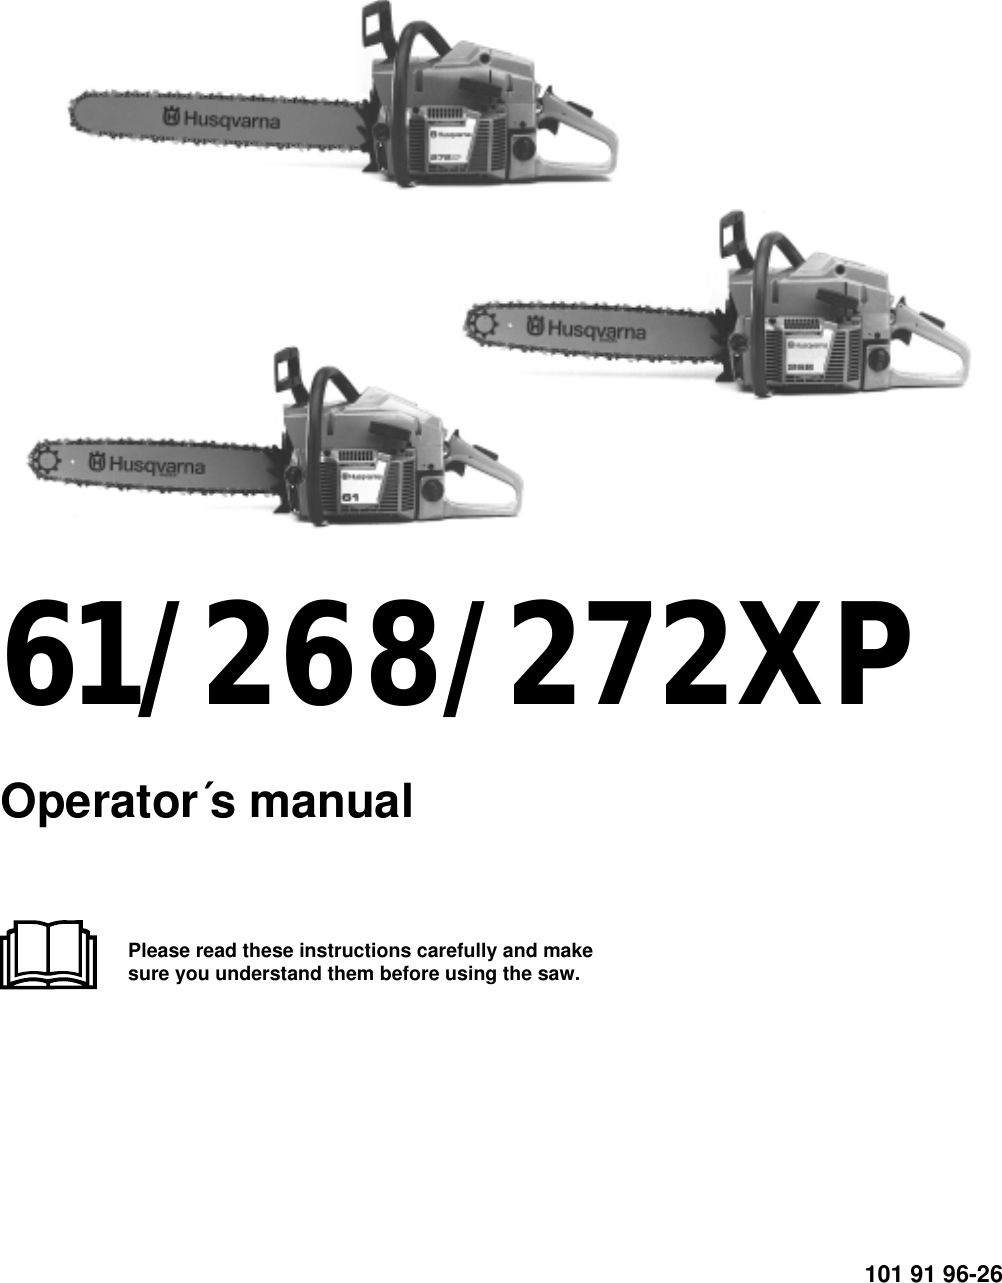 Husqvarna 61 268 272Xp Operators Manual ManualsLib Makes